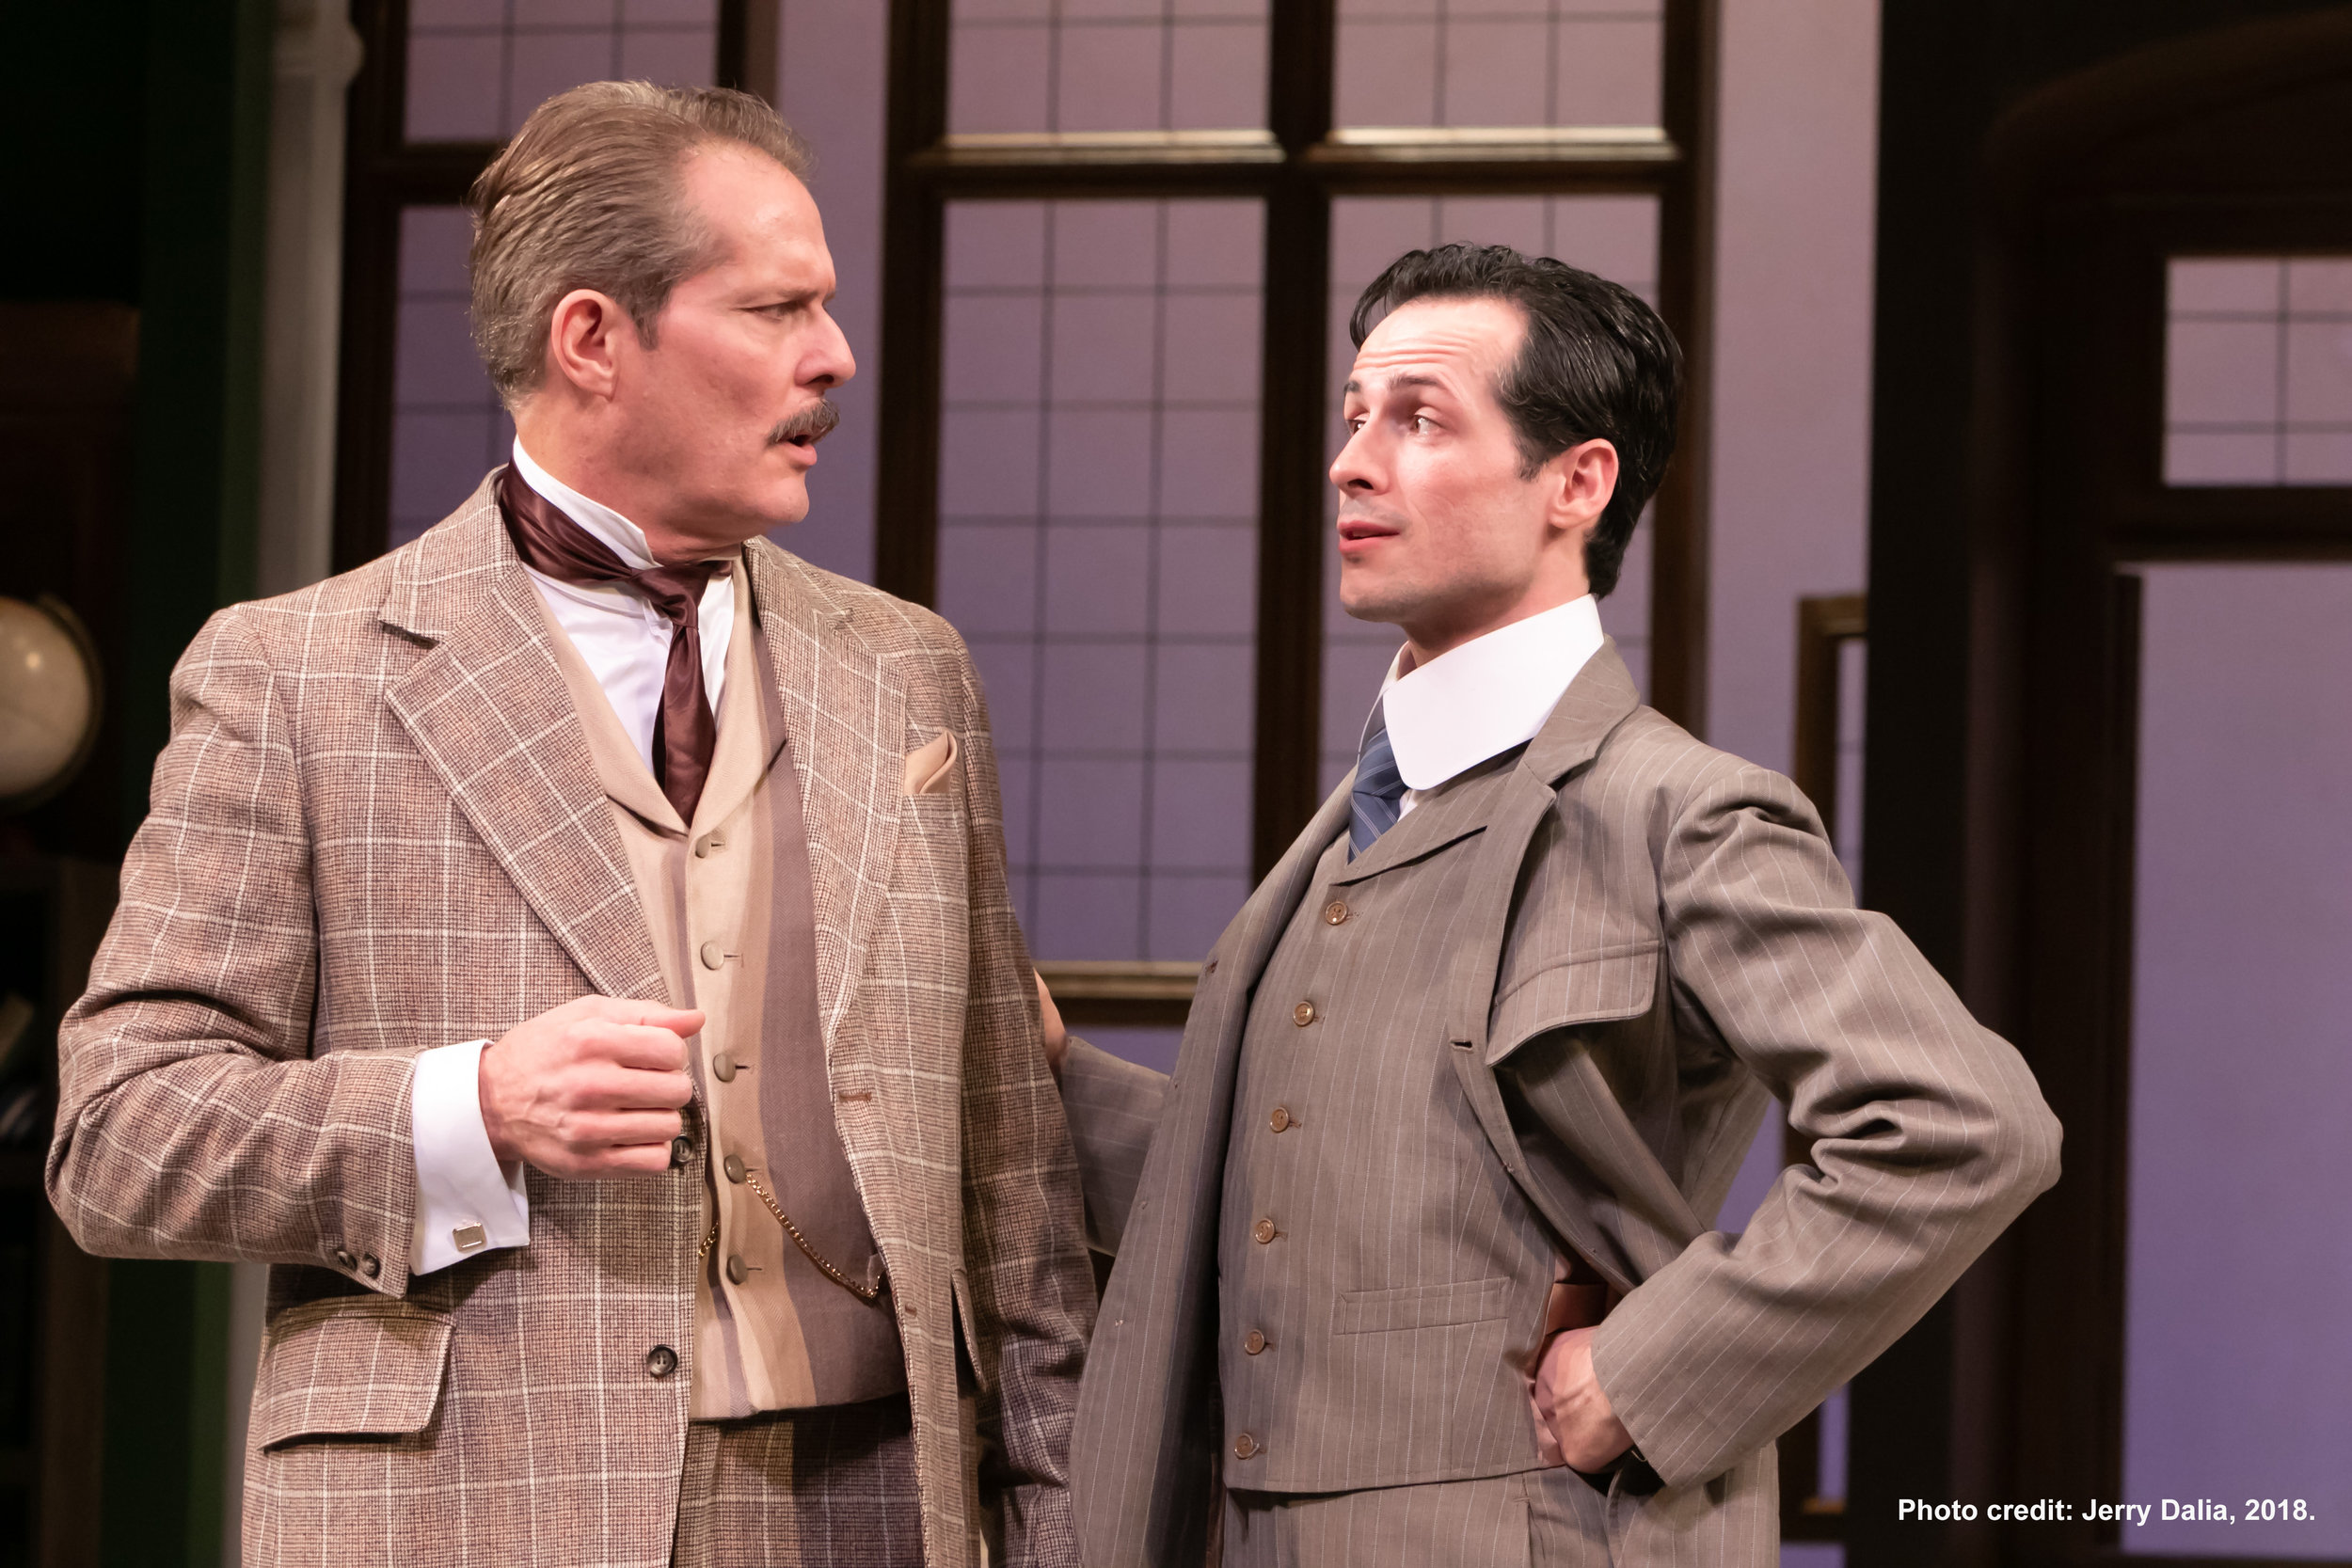 Colonel Francis Chesney (David Andrew MacDonald) and Jack Chesney (Aaron McDaniel)